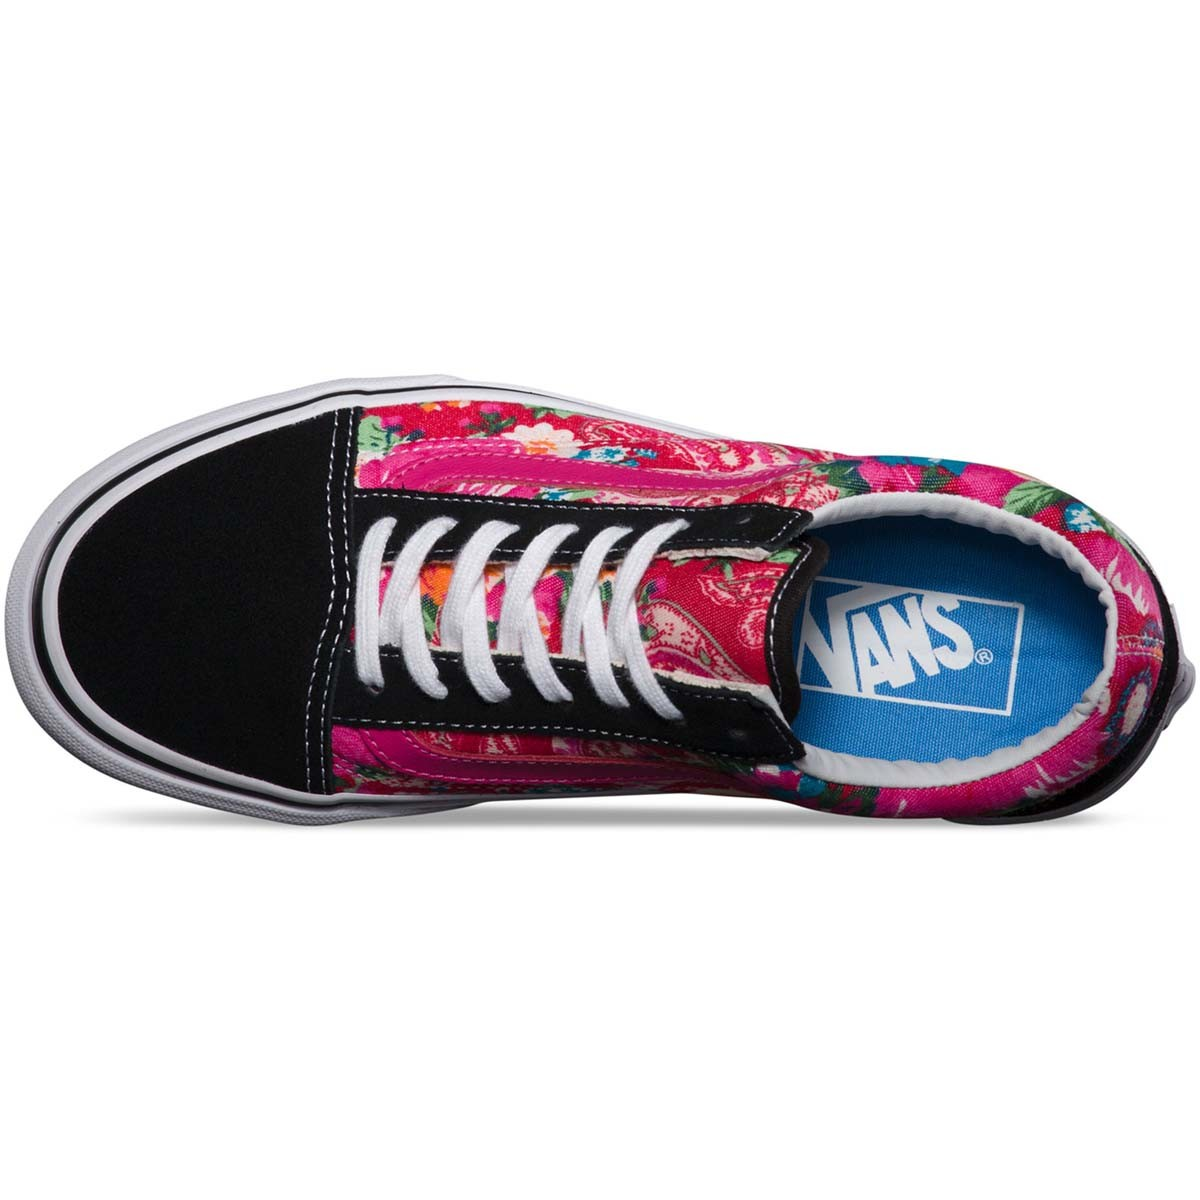 Vans multi floral old skool core classics shoes for Old skool house classics list